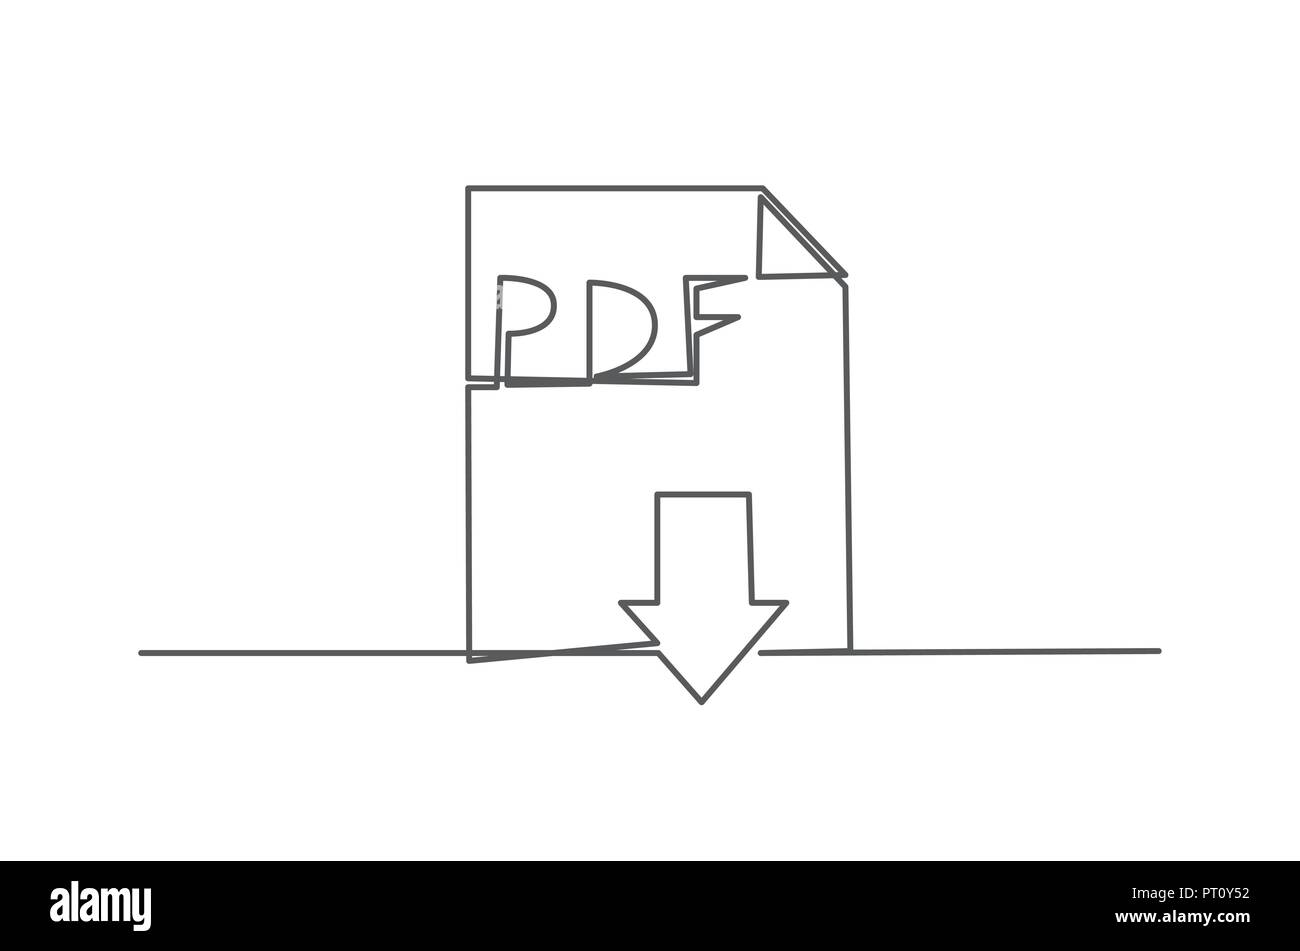 PDF One line drawing - Stock Image